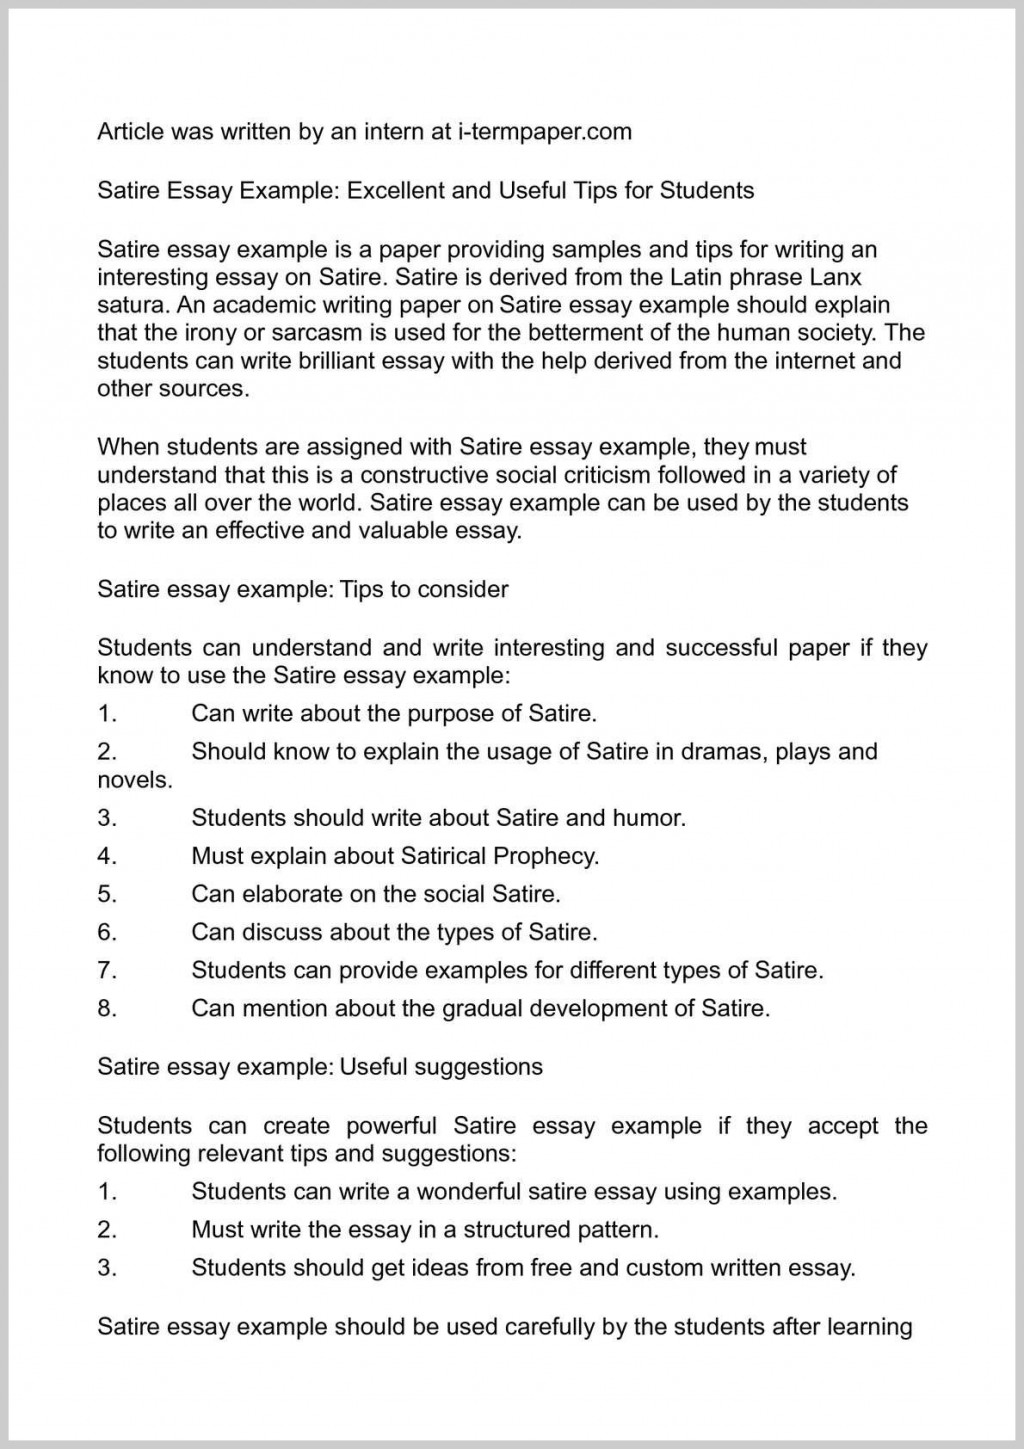 014 Essay Satiric Negative Impacts Of Social Media The Best Writing Satirical Topics Frightening Prompts Satire On Obesity Good Large